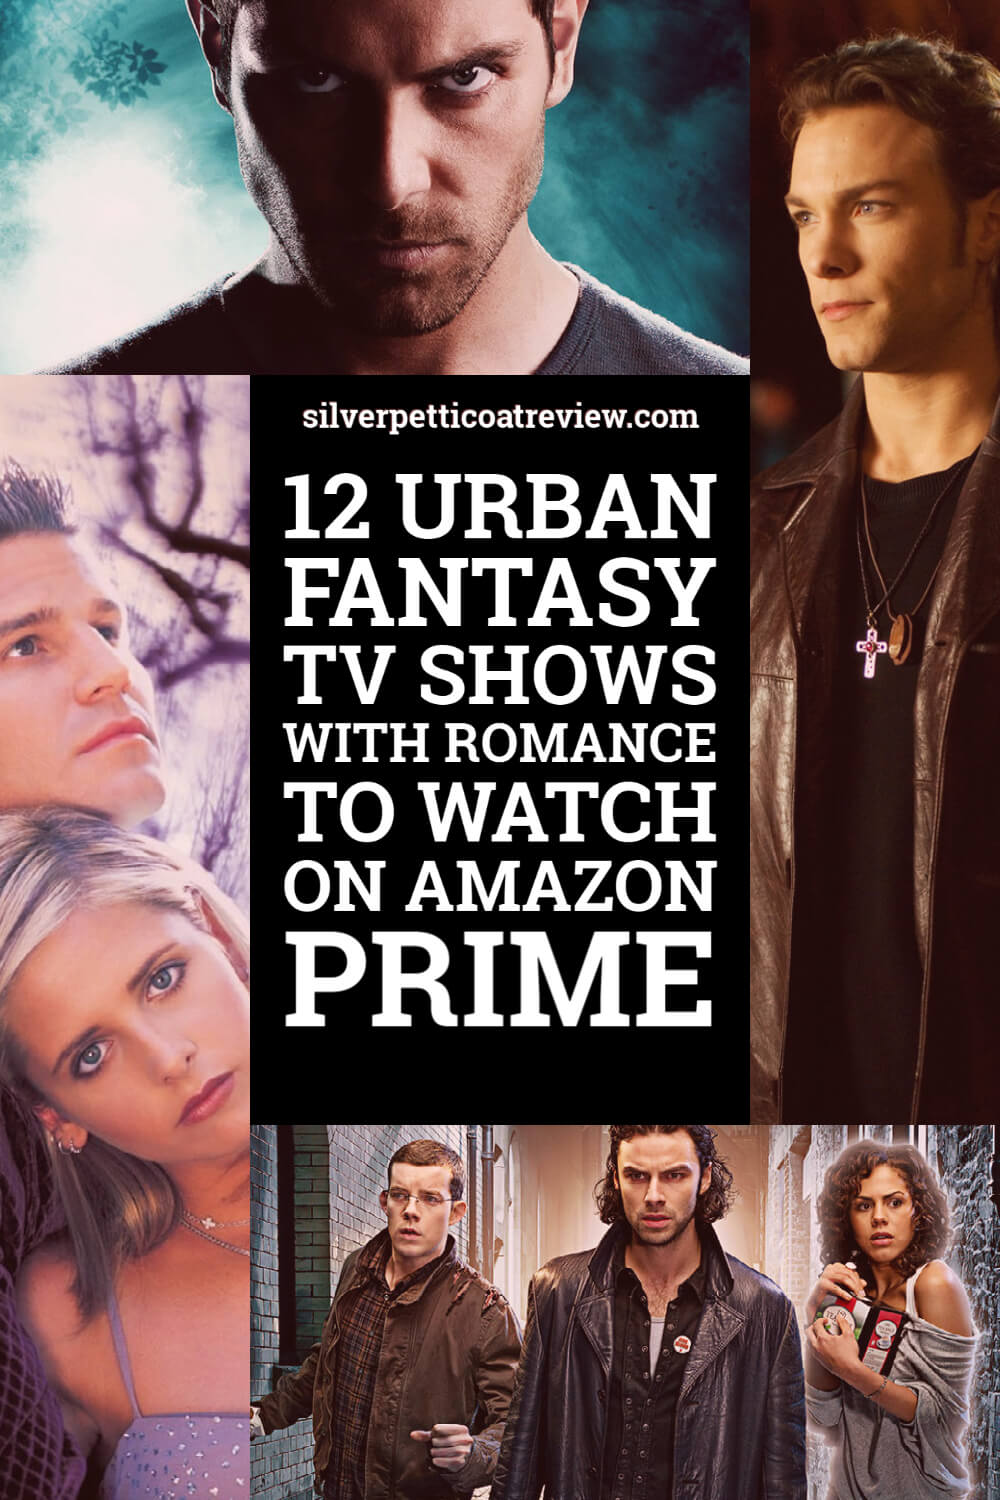 12 Urban Fantasy TV Shows to Watch on Amazon Prime; pinterest image